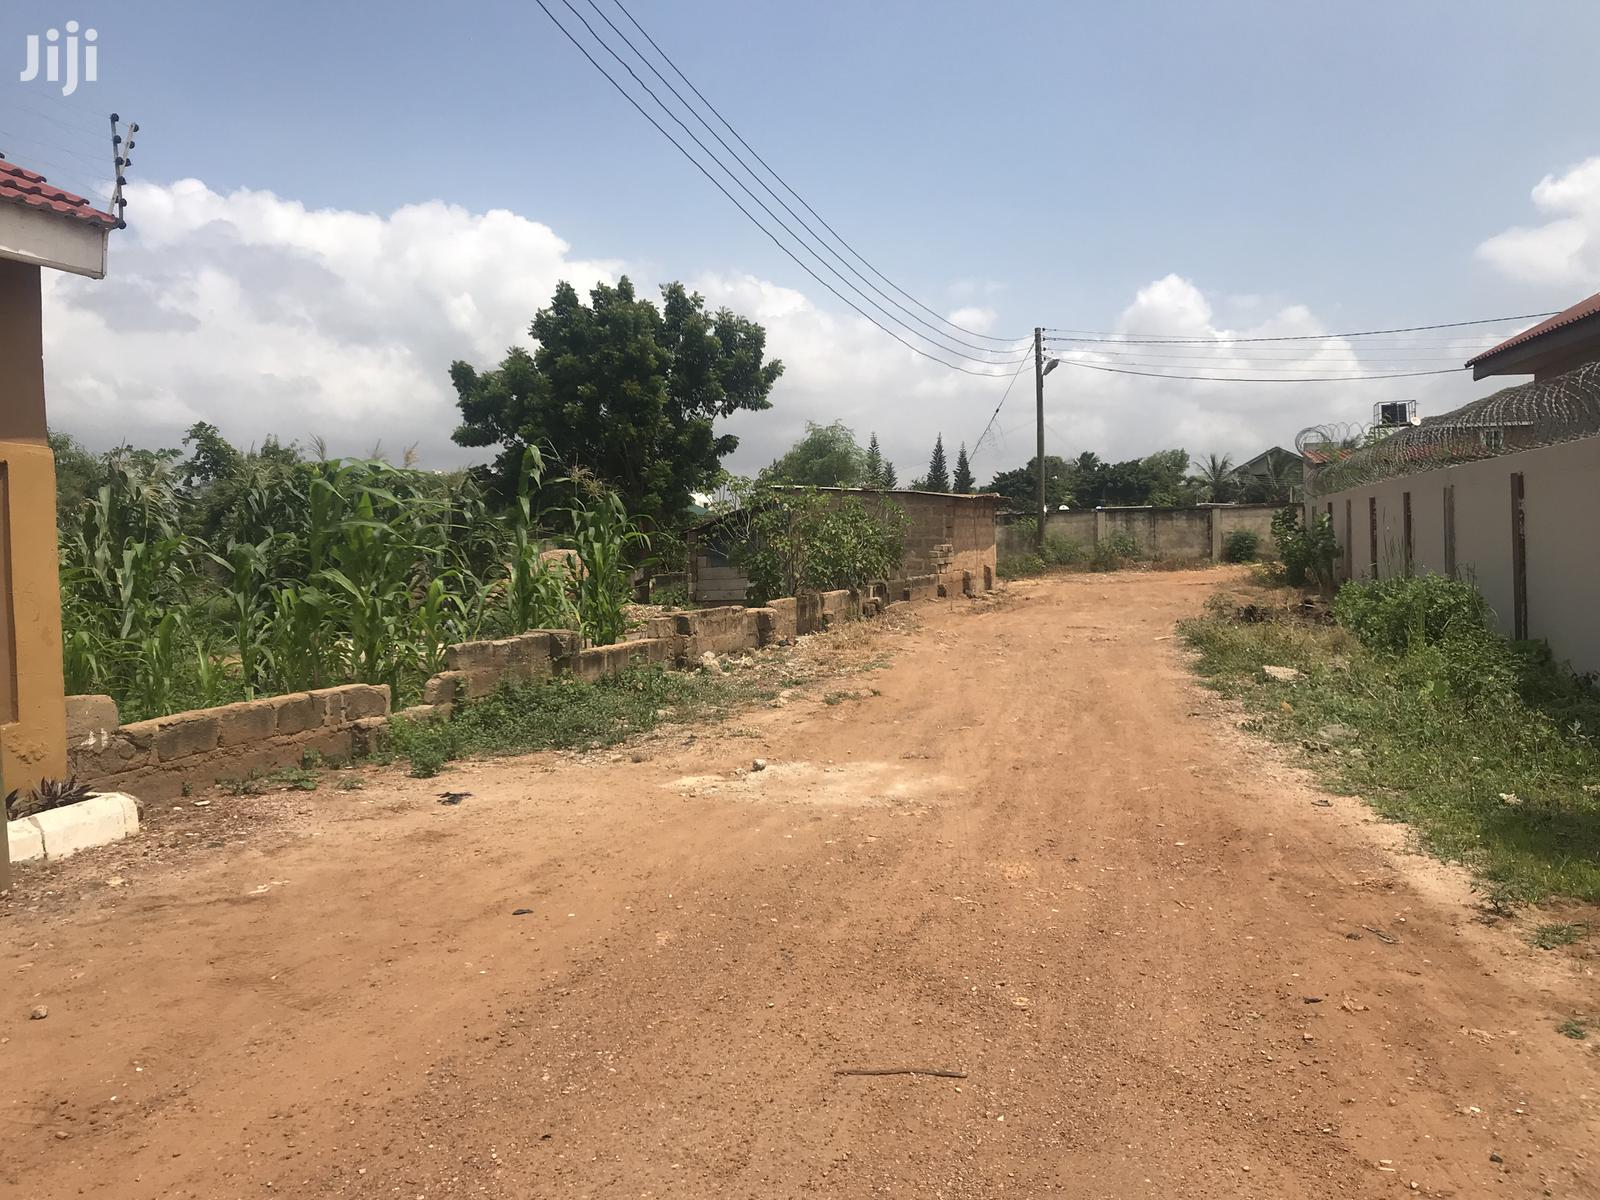 One Plot of Land for Sale at West Trasacco | Land & Plots For Sale for sale in East Legon, Greater Accra, Ghana